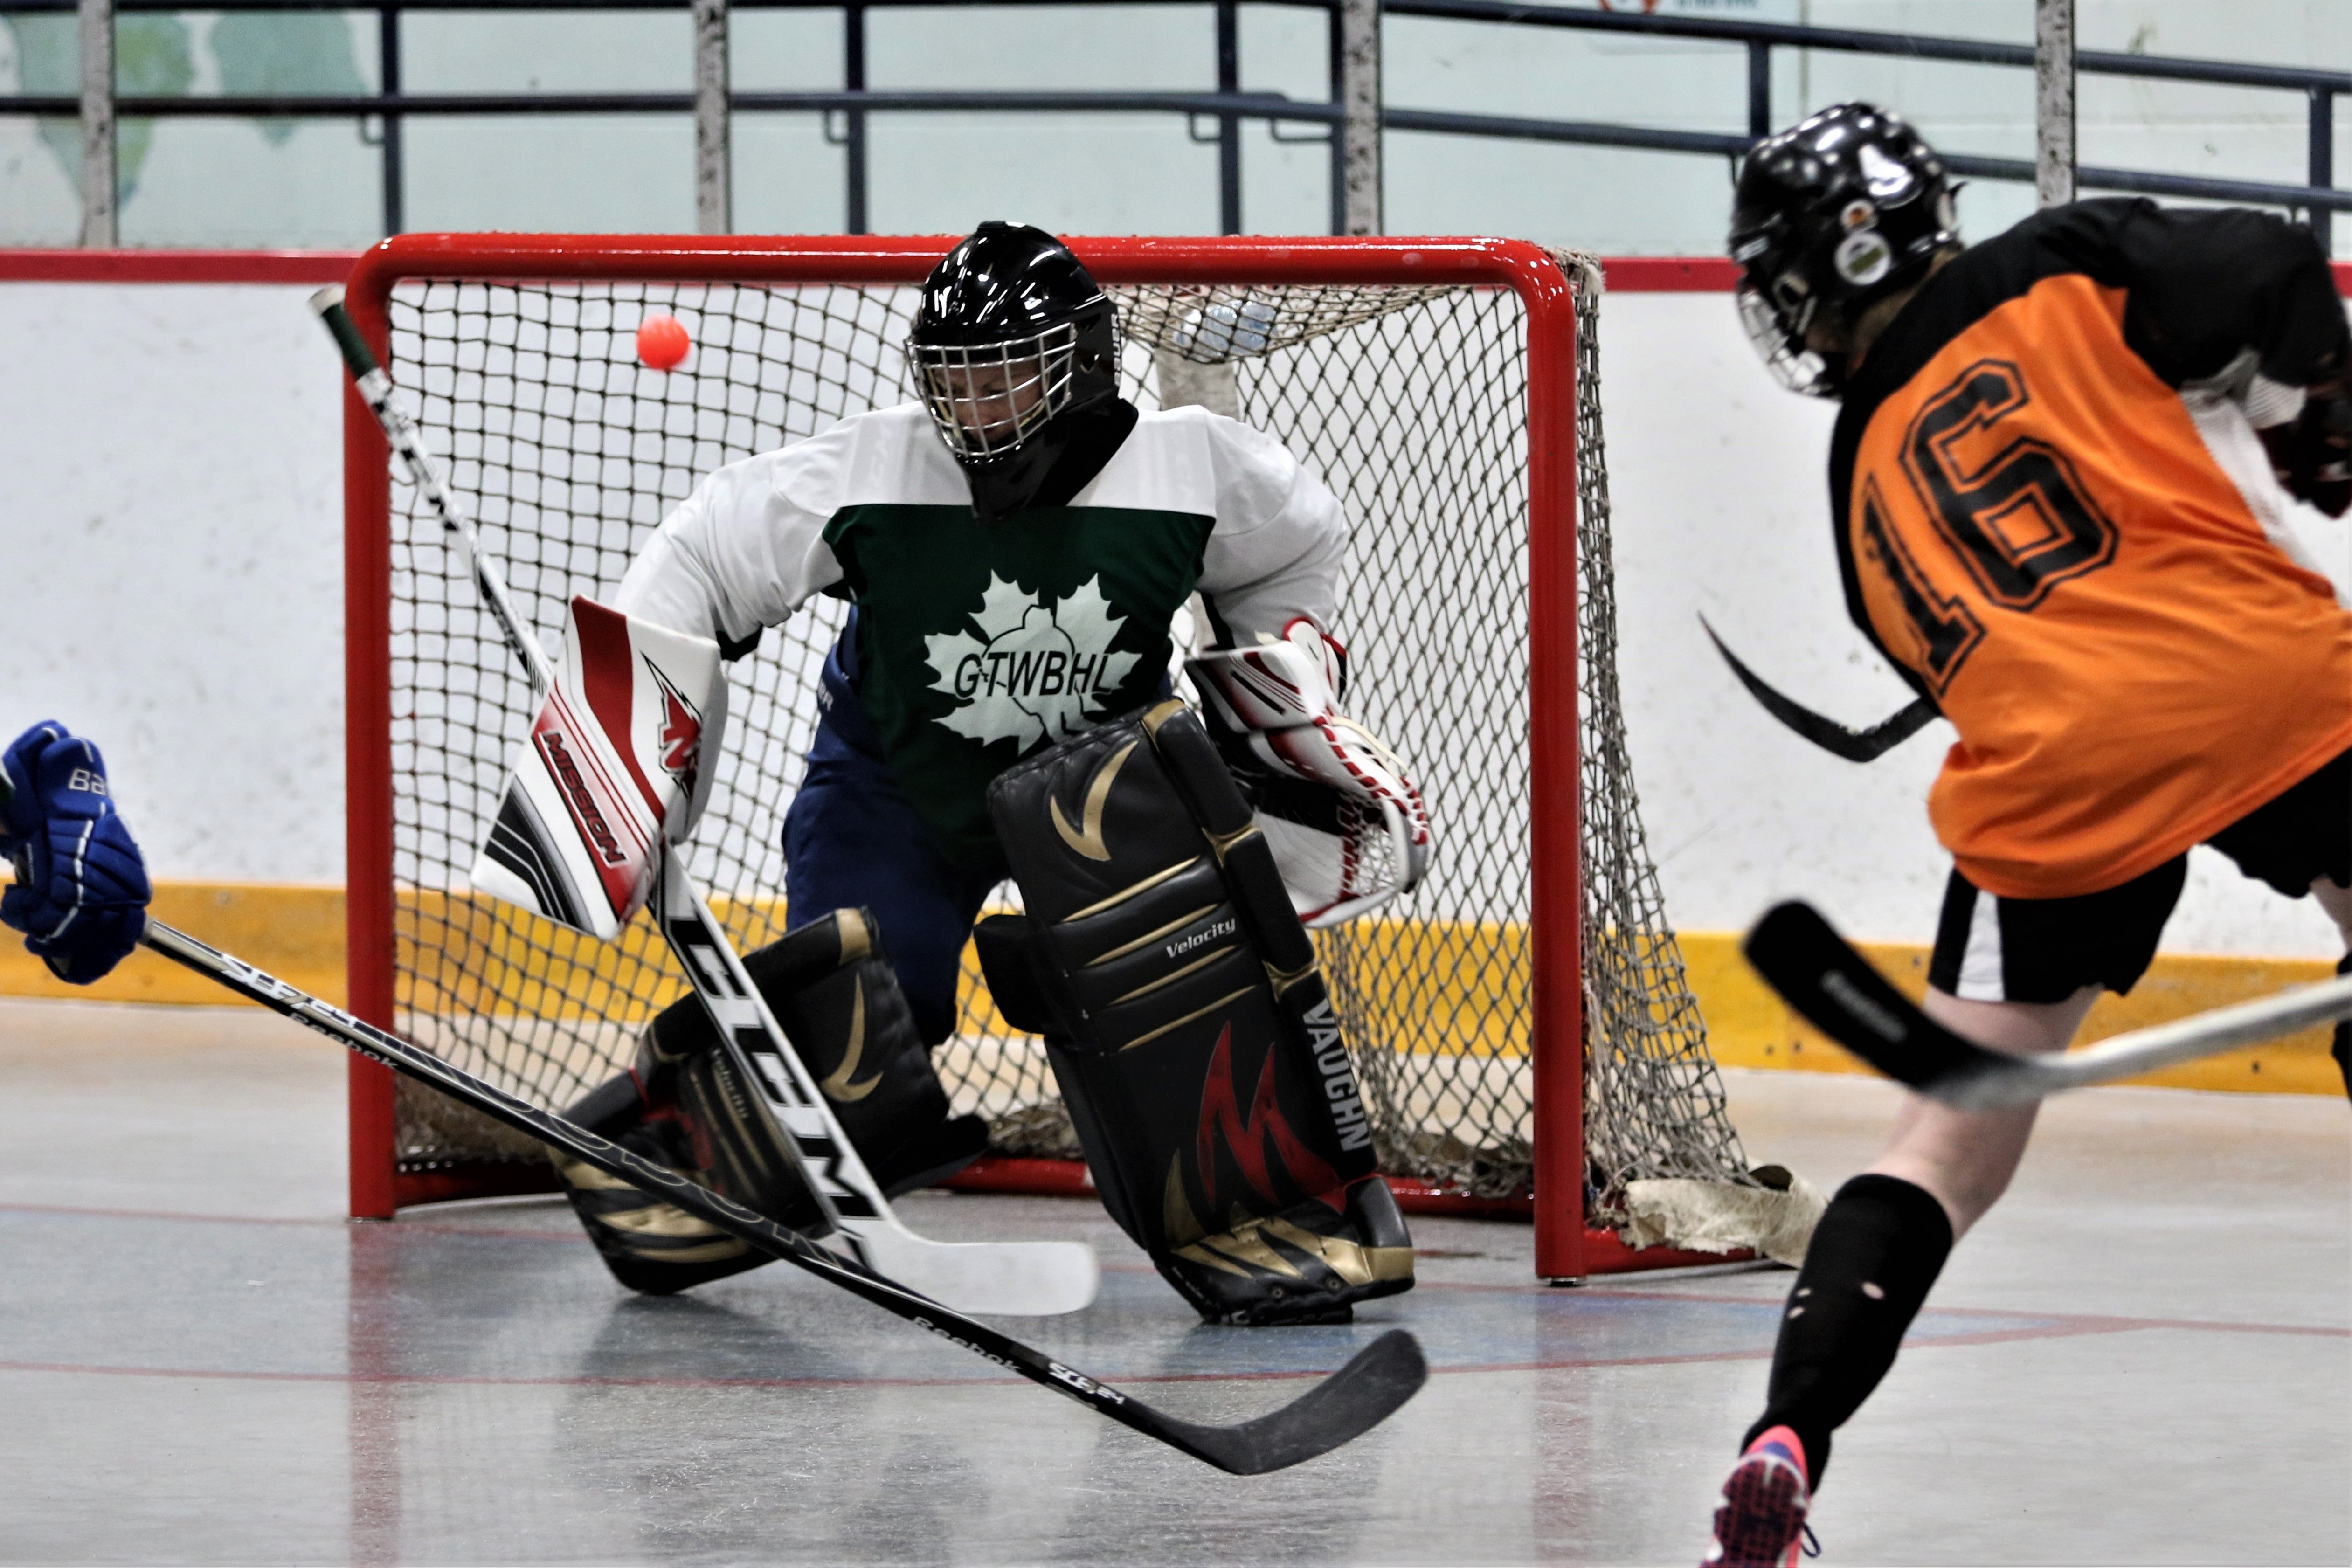 The Gtwbhl A League Passionate About Ball Hockey League Hockey Players Hockey